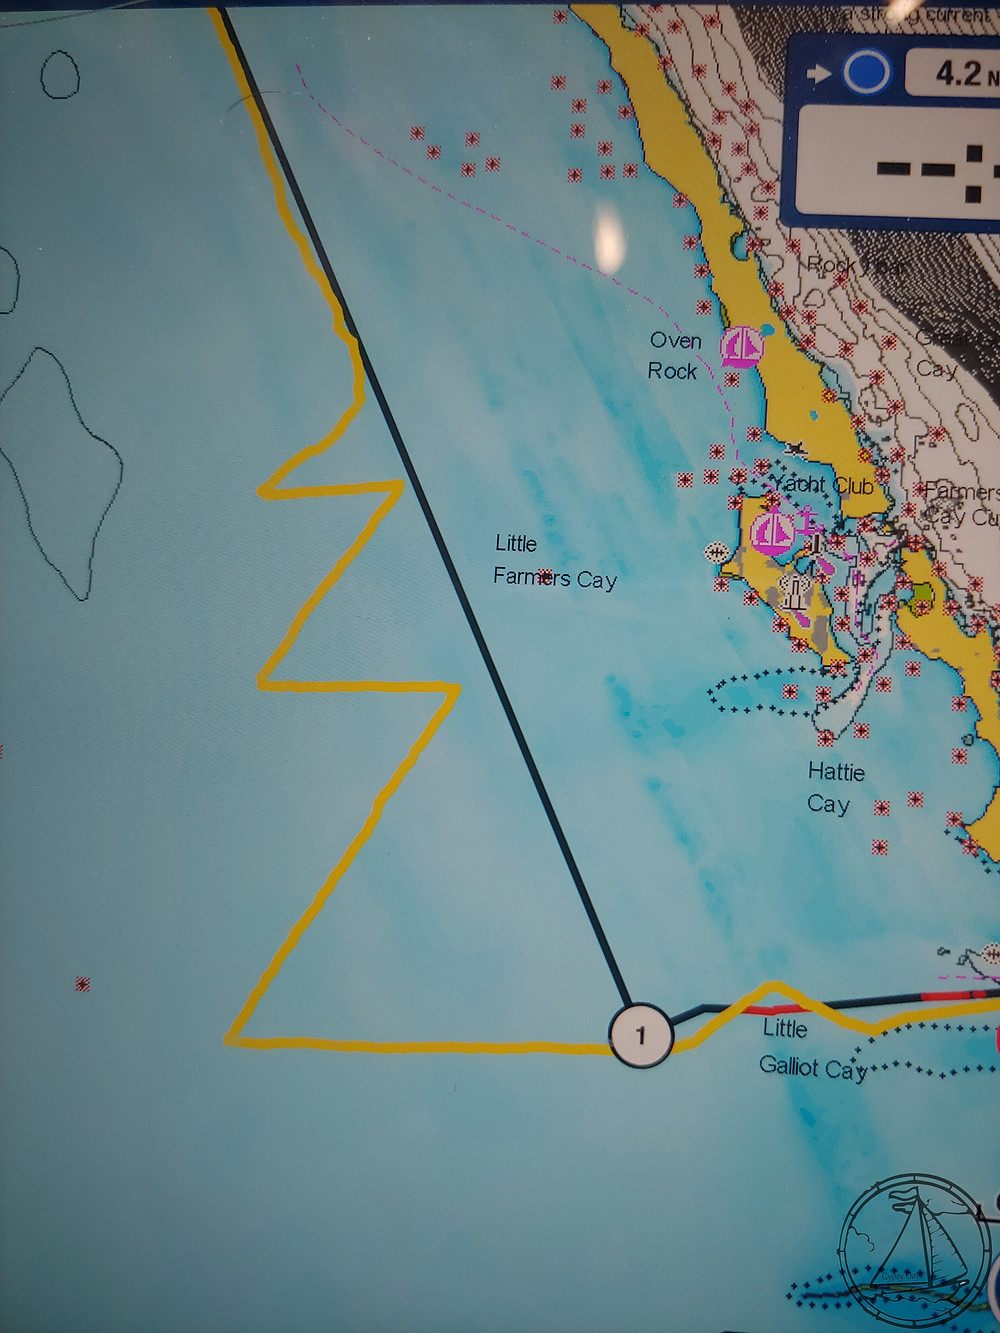 Navionics route showing tacking down Little Farmer's Cay